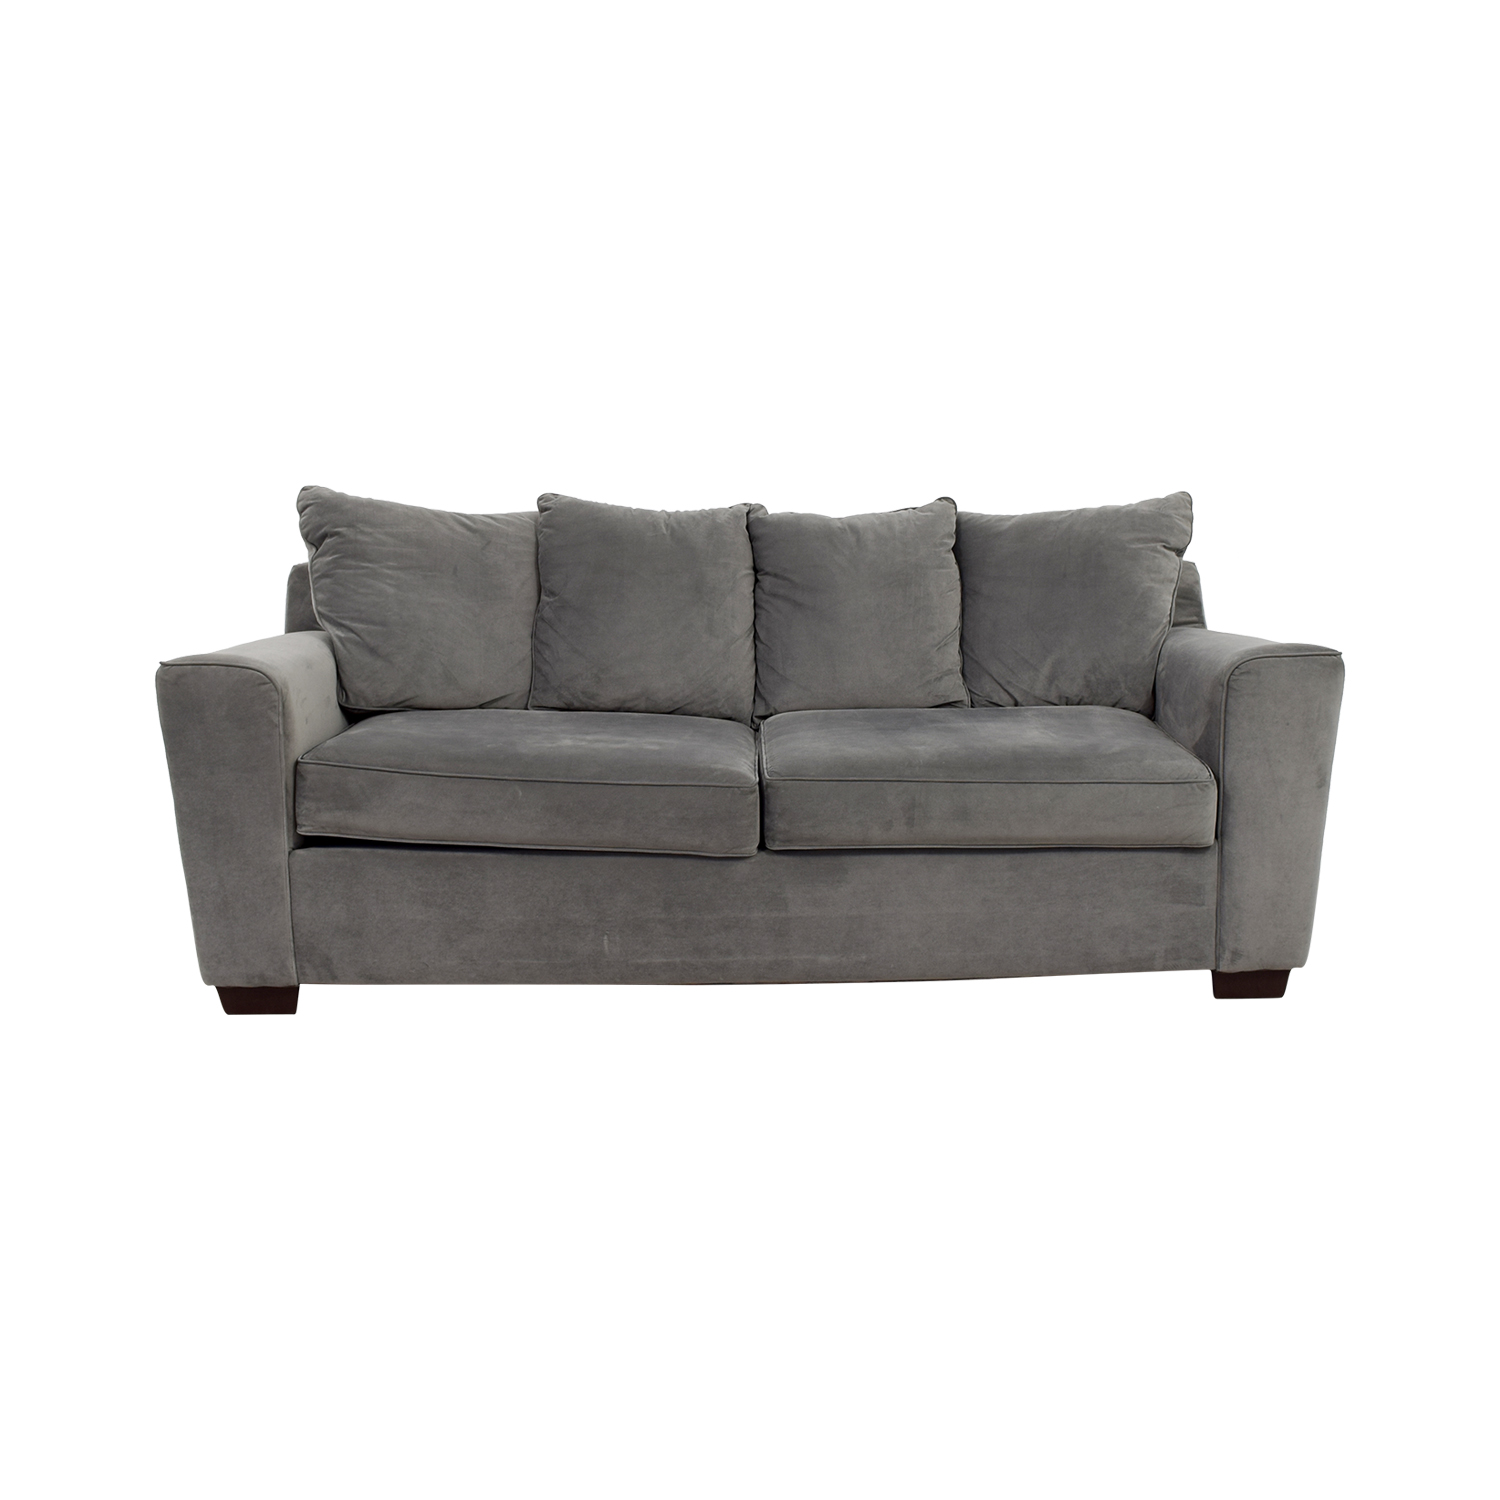 Jennifer Convertible Jennifer Convertible Microfiber Sofa Sofas